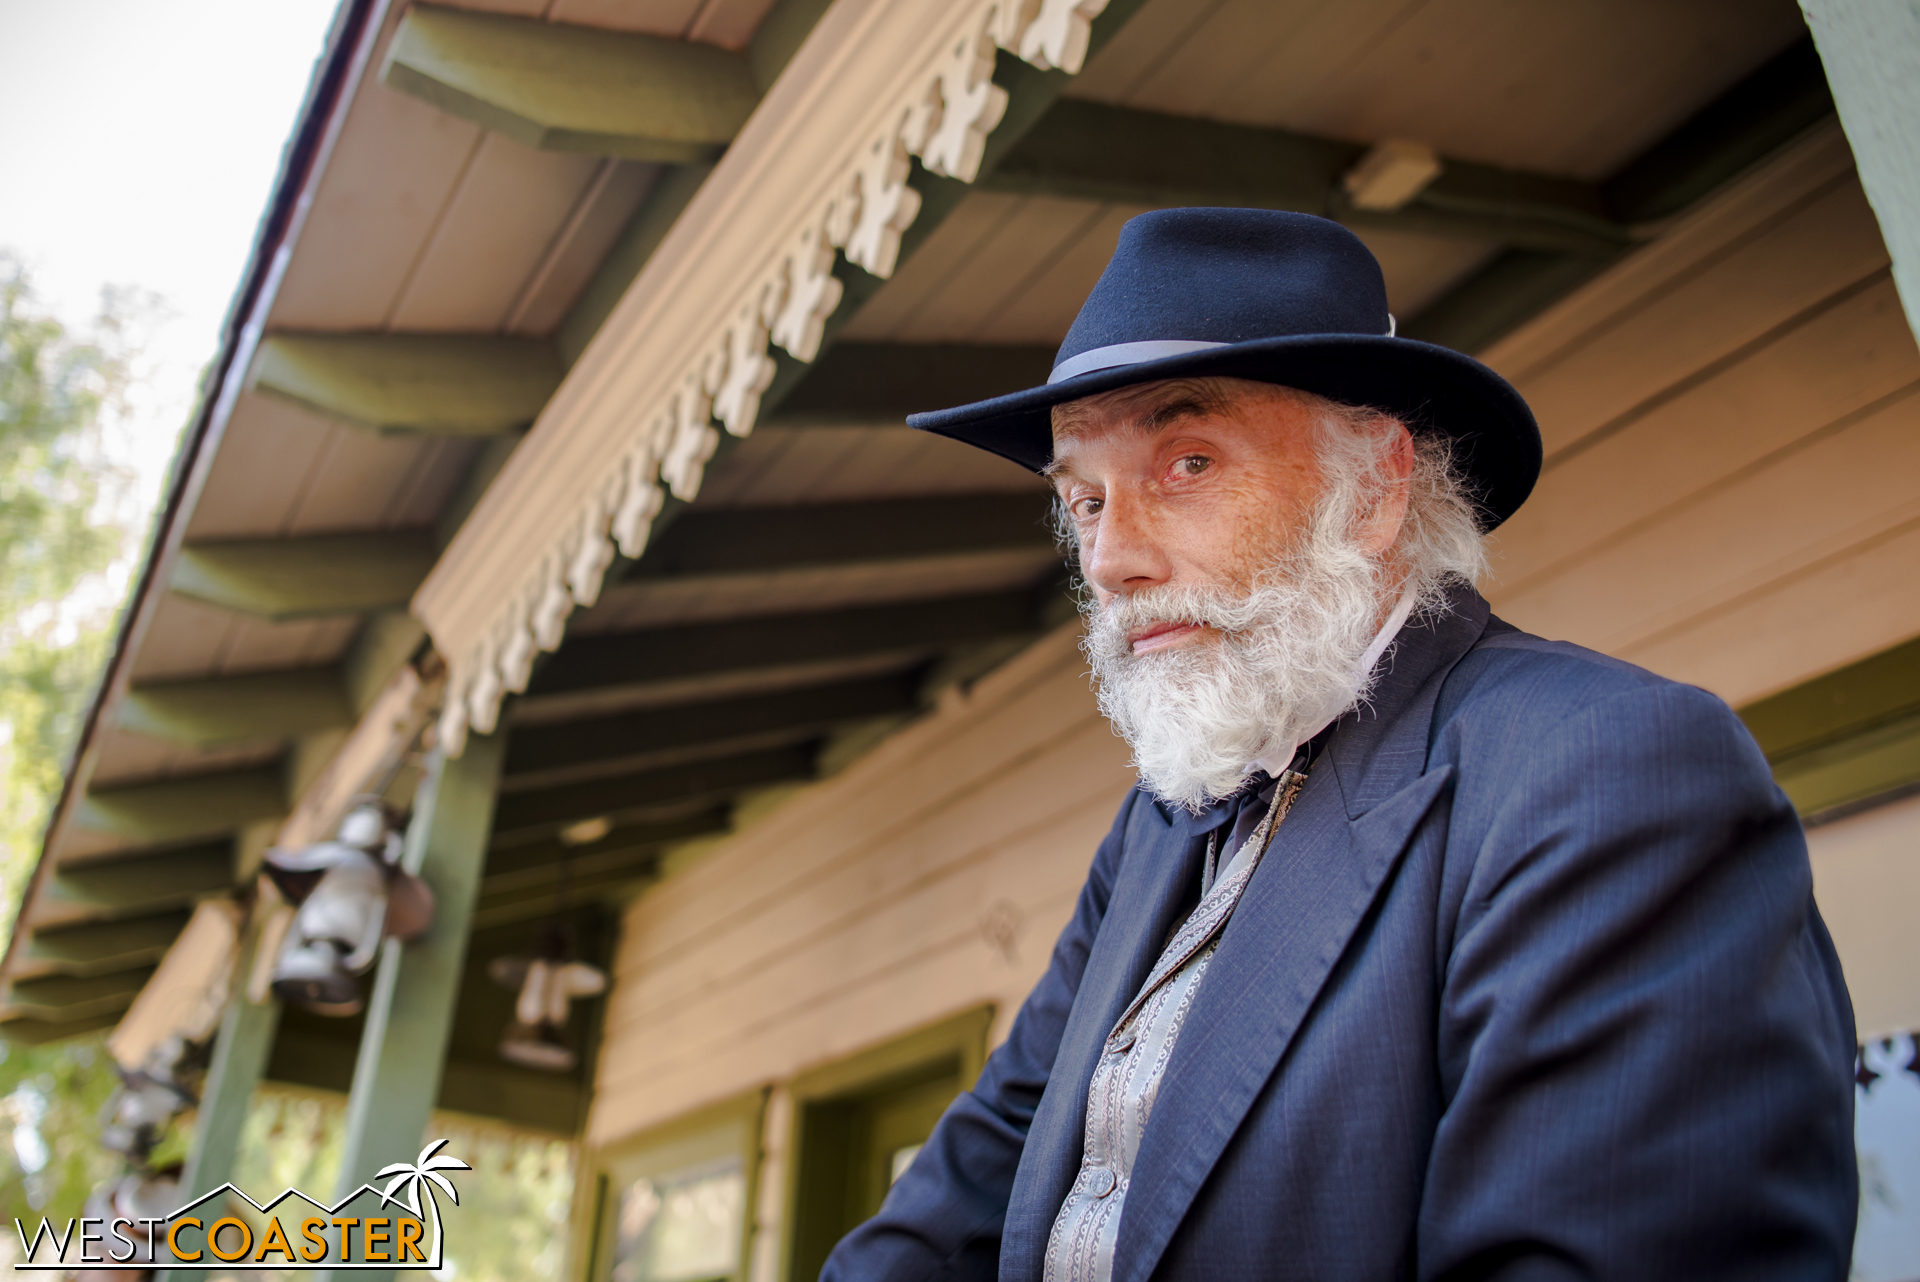 Or is he?  Judge Roy Bean has seen a lot in his day, and though he is also skeptical, he cannot rule out the coincidences.